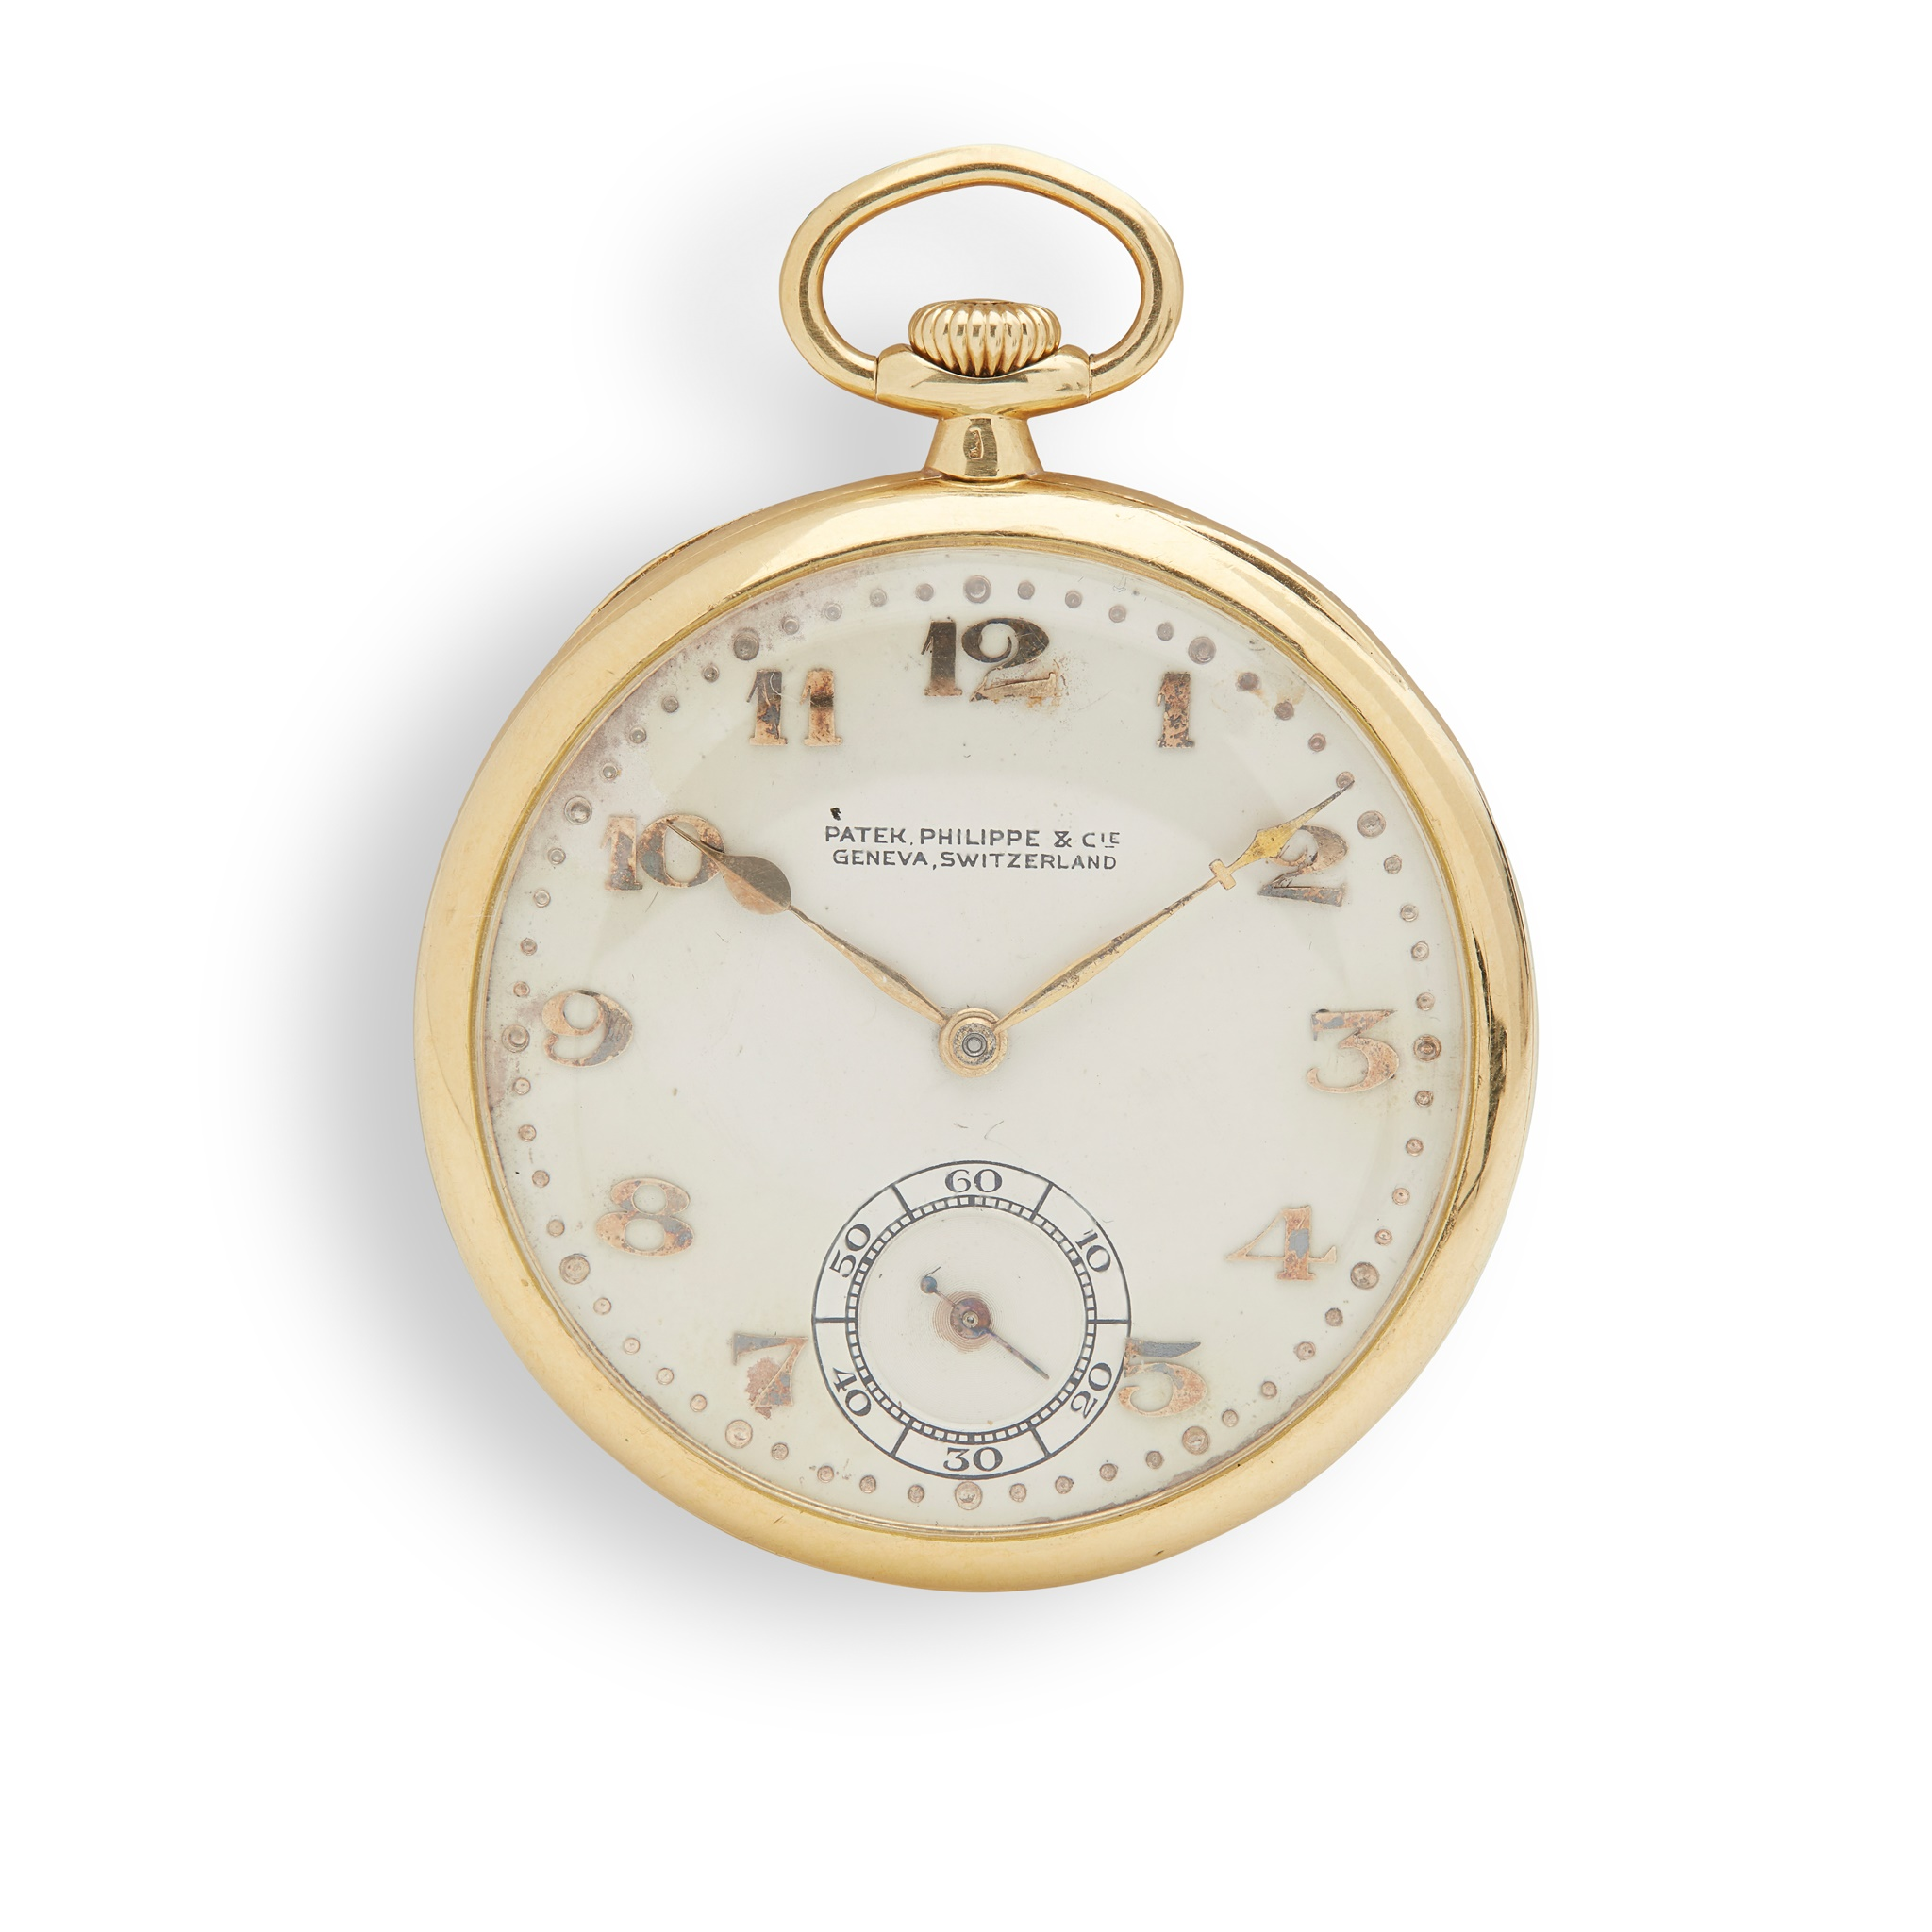 Patek Philippe: a gold pocket watch 18ct gold case, open face keyless wind, signed Patek Philippe